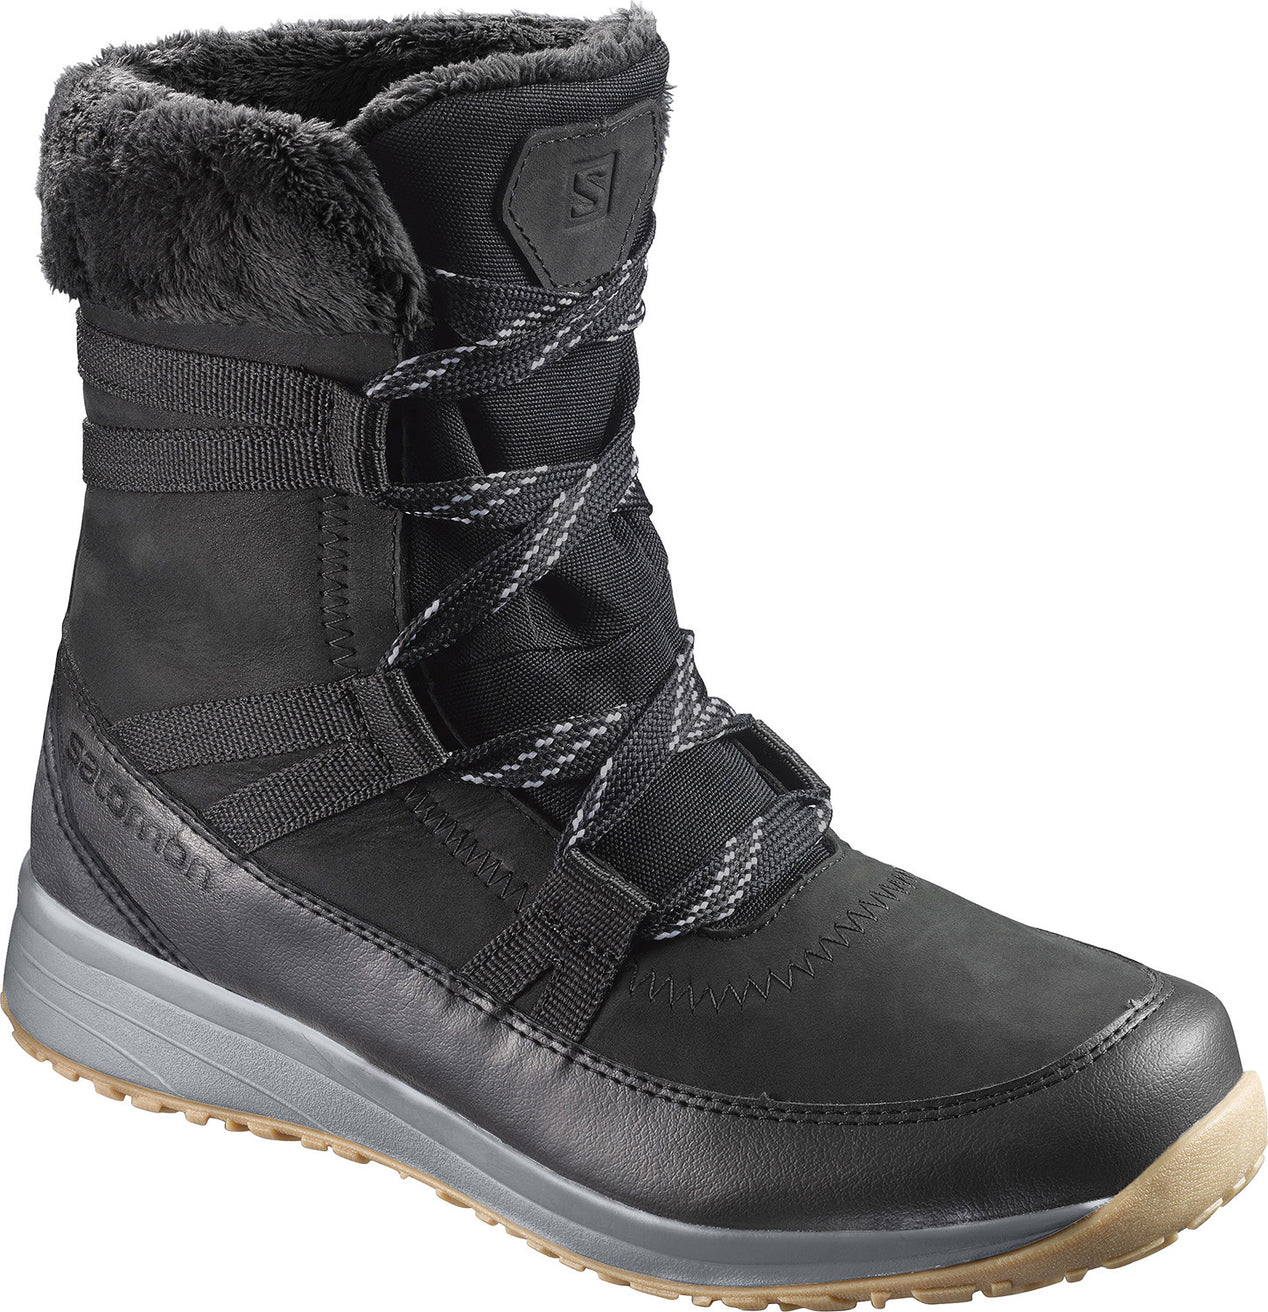 find workmanship quality first how to orders Salomon Heika LTR CS WP Insulated Boots - Women's